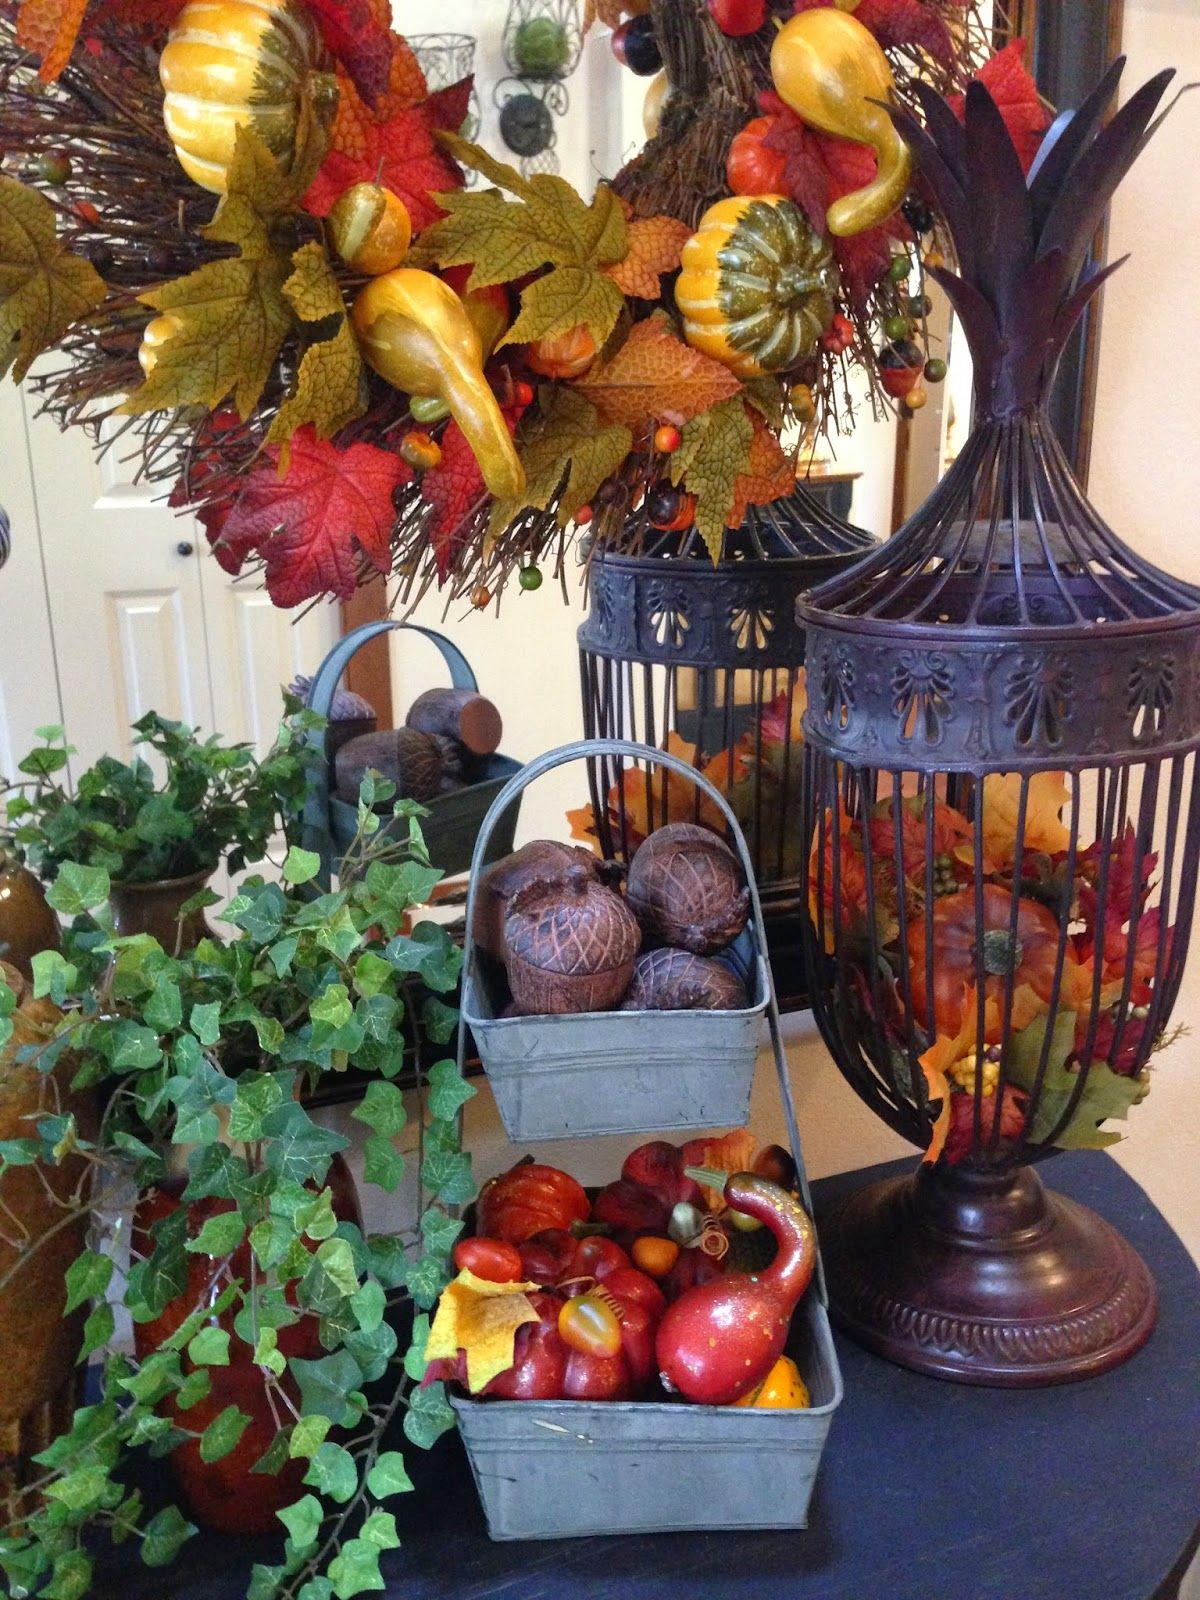 The Tuscan Home Autumn Table Display